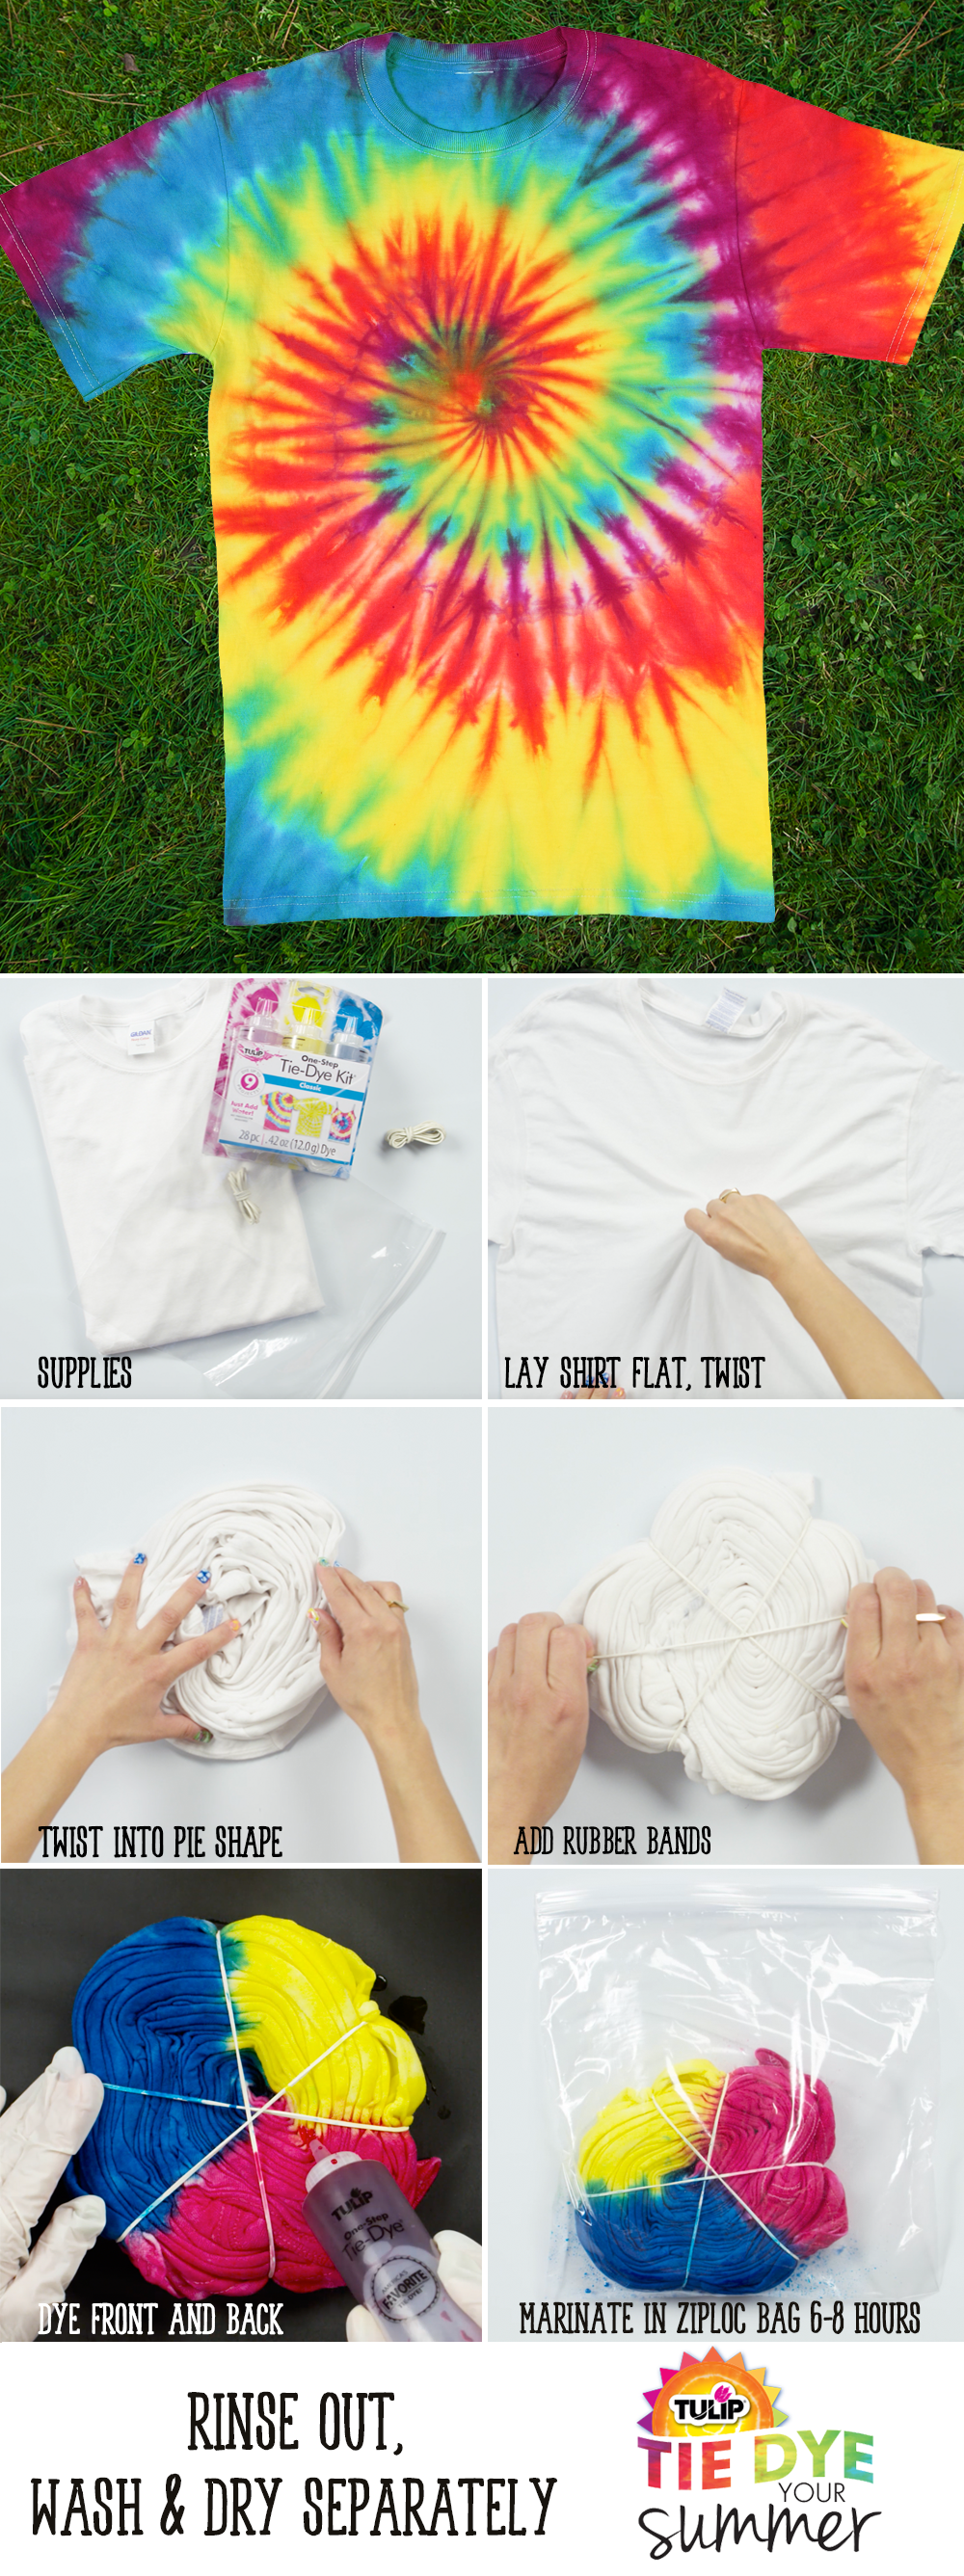 How To Do Spiral Tie Dye Patterns With Tulip One Step Tie